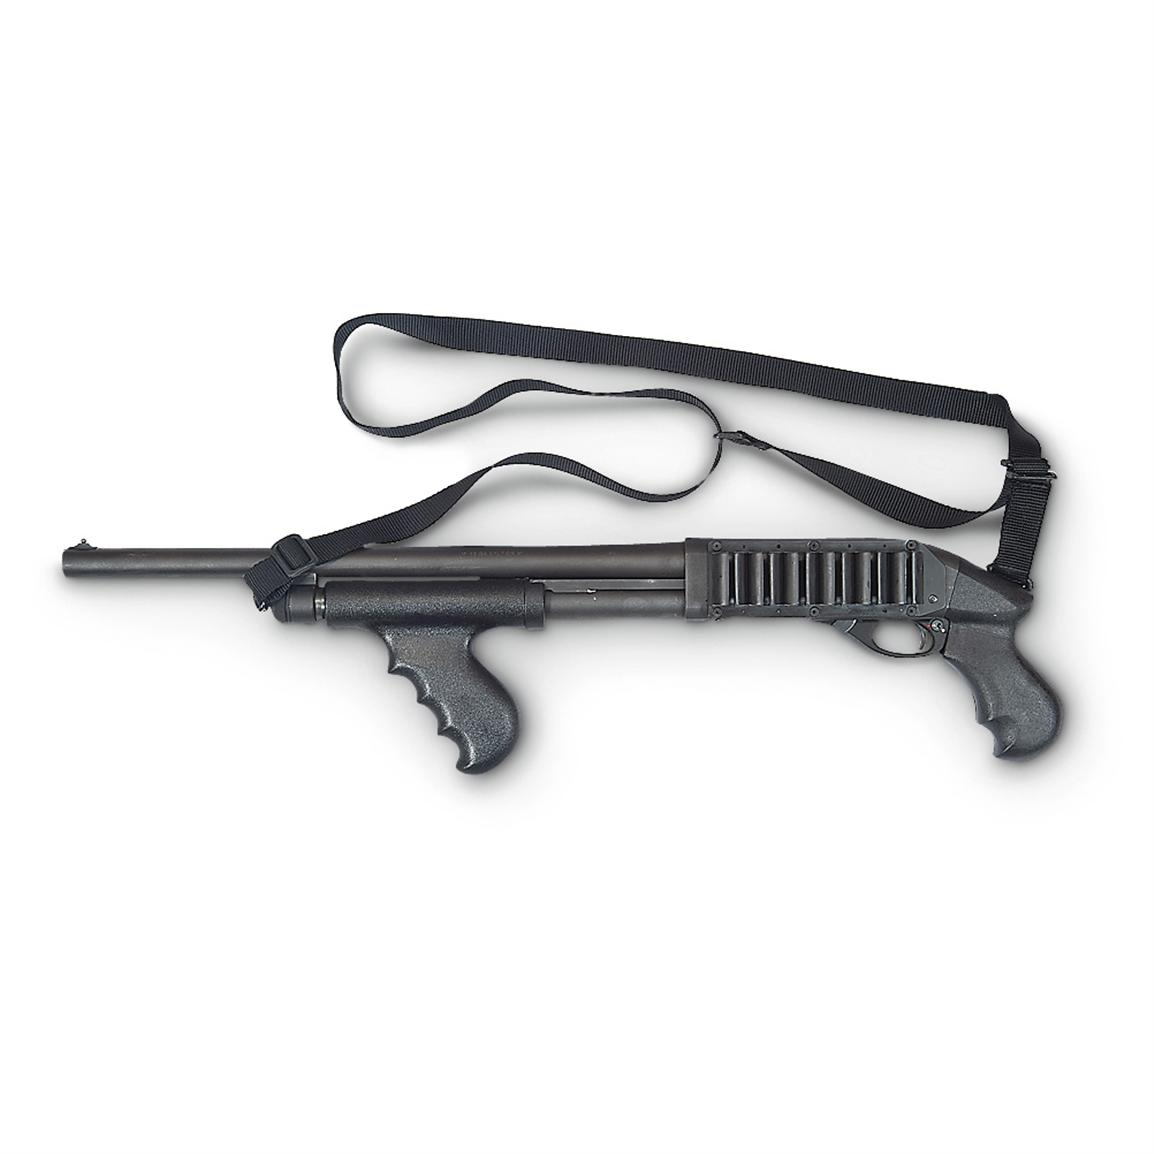 TacStar® Shotgun Conversion Kit • A quick-action upgrade for self-defense!